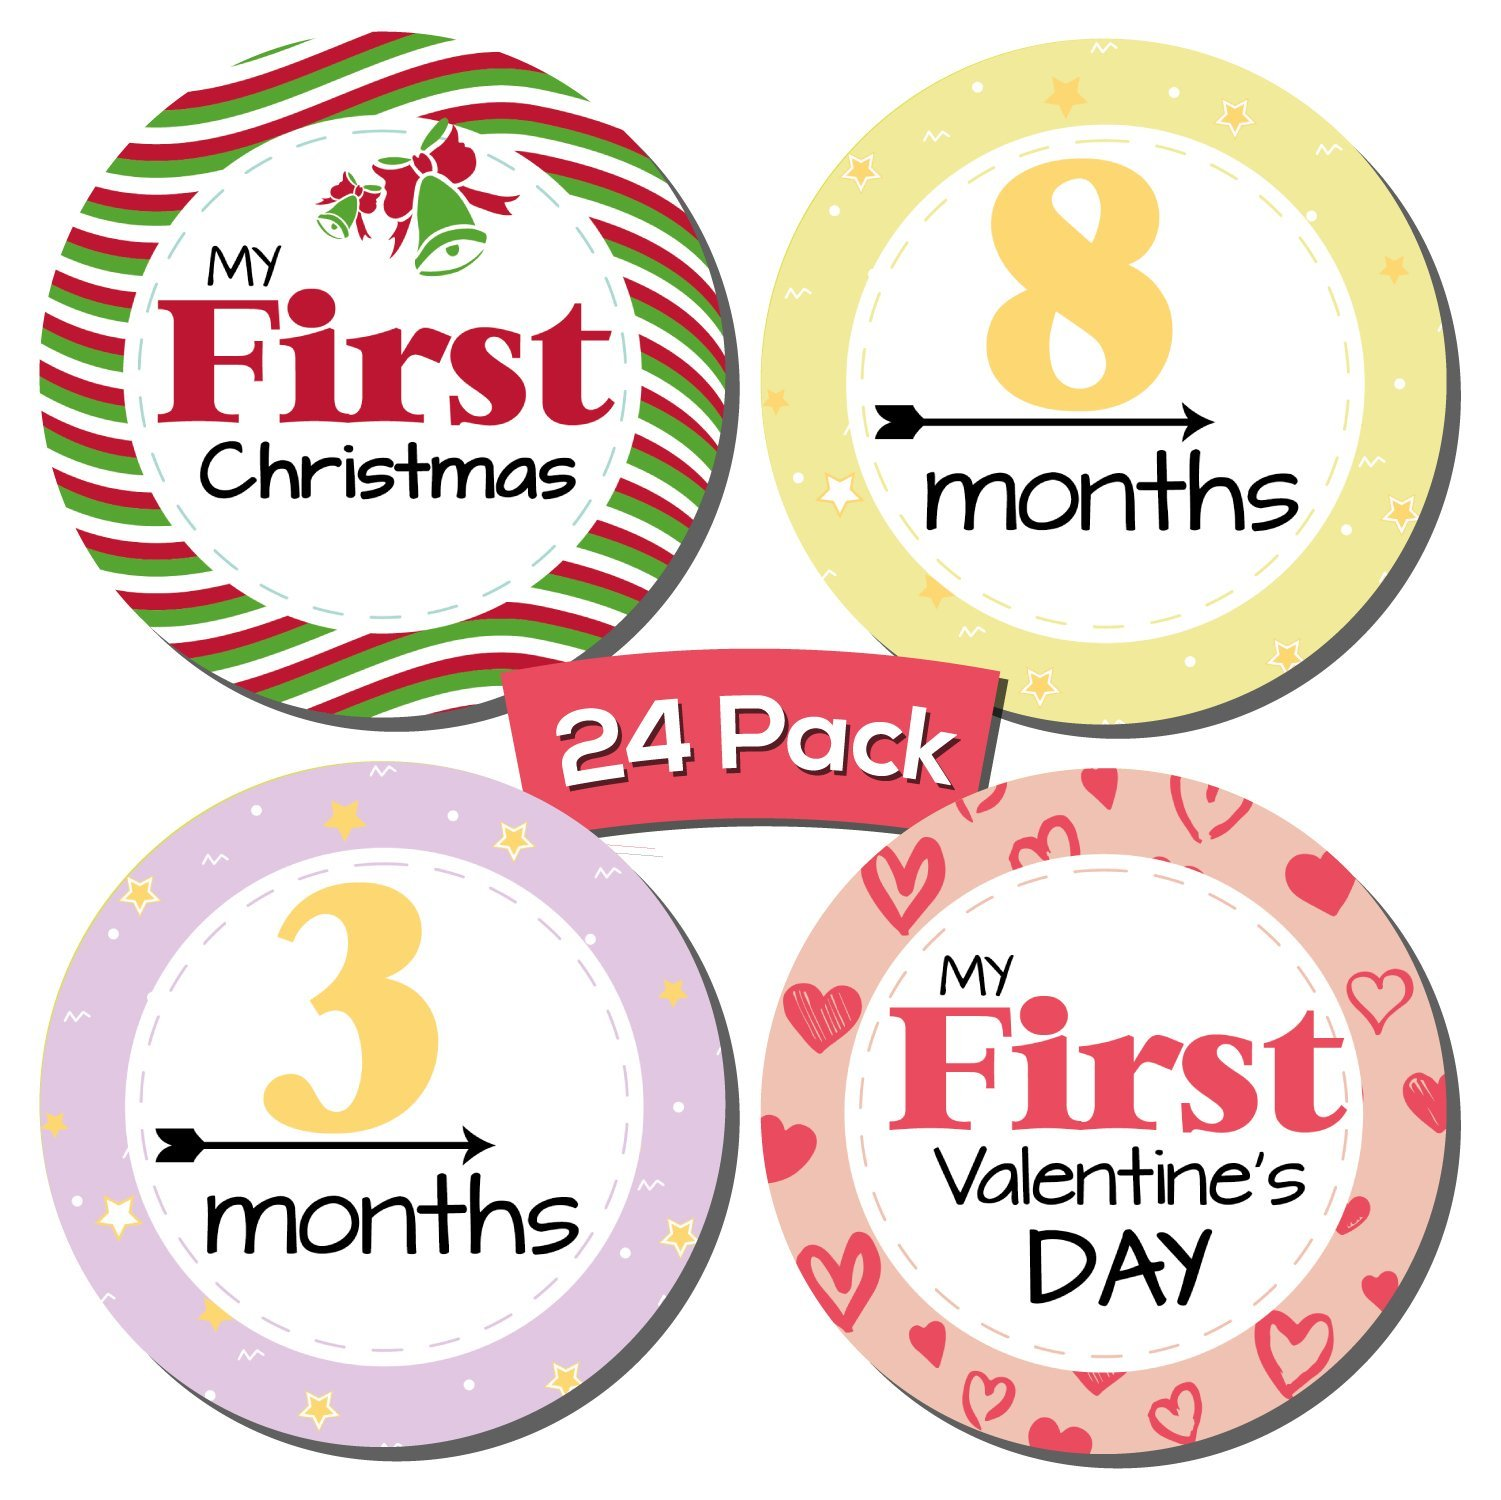 24 Pack Baby Milestone Stickers; Includes 12 Monthly Stickers and 12 First Holidays Stickers, Great Shower Registry Gift or Scrapbook Photo Keepsake by Kinokyo